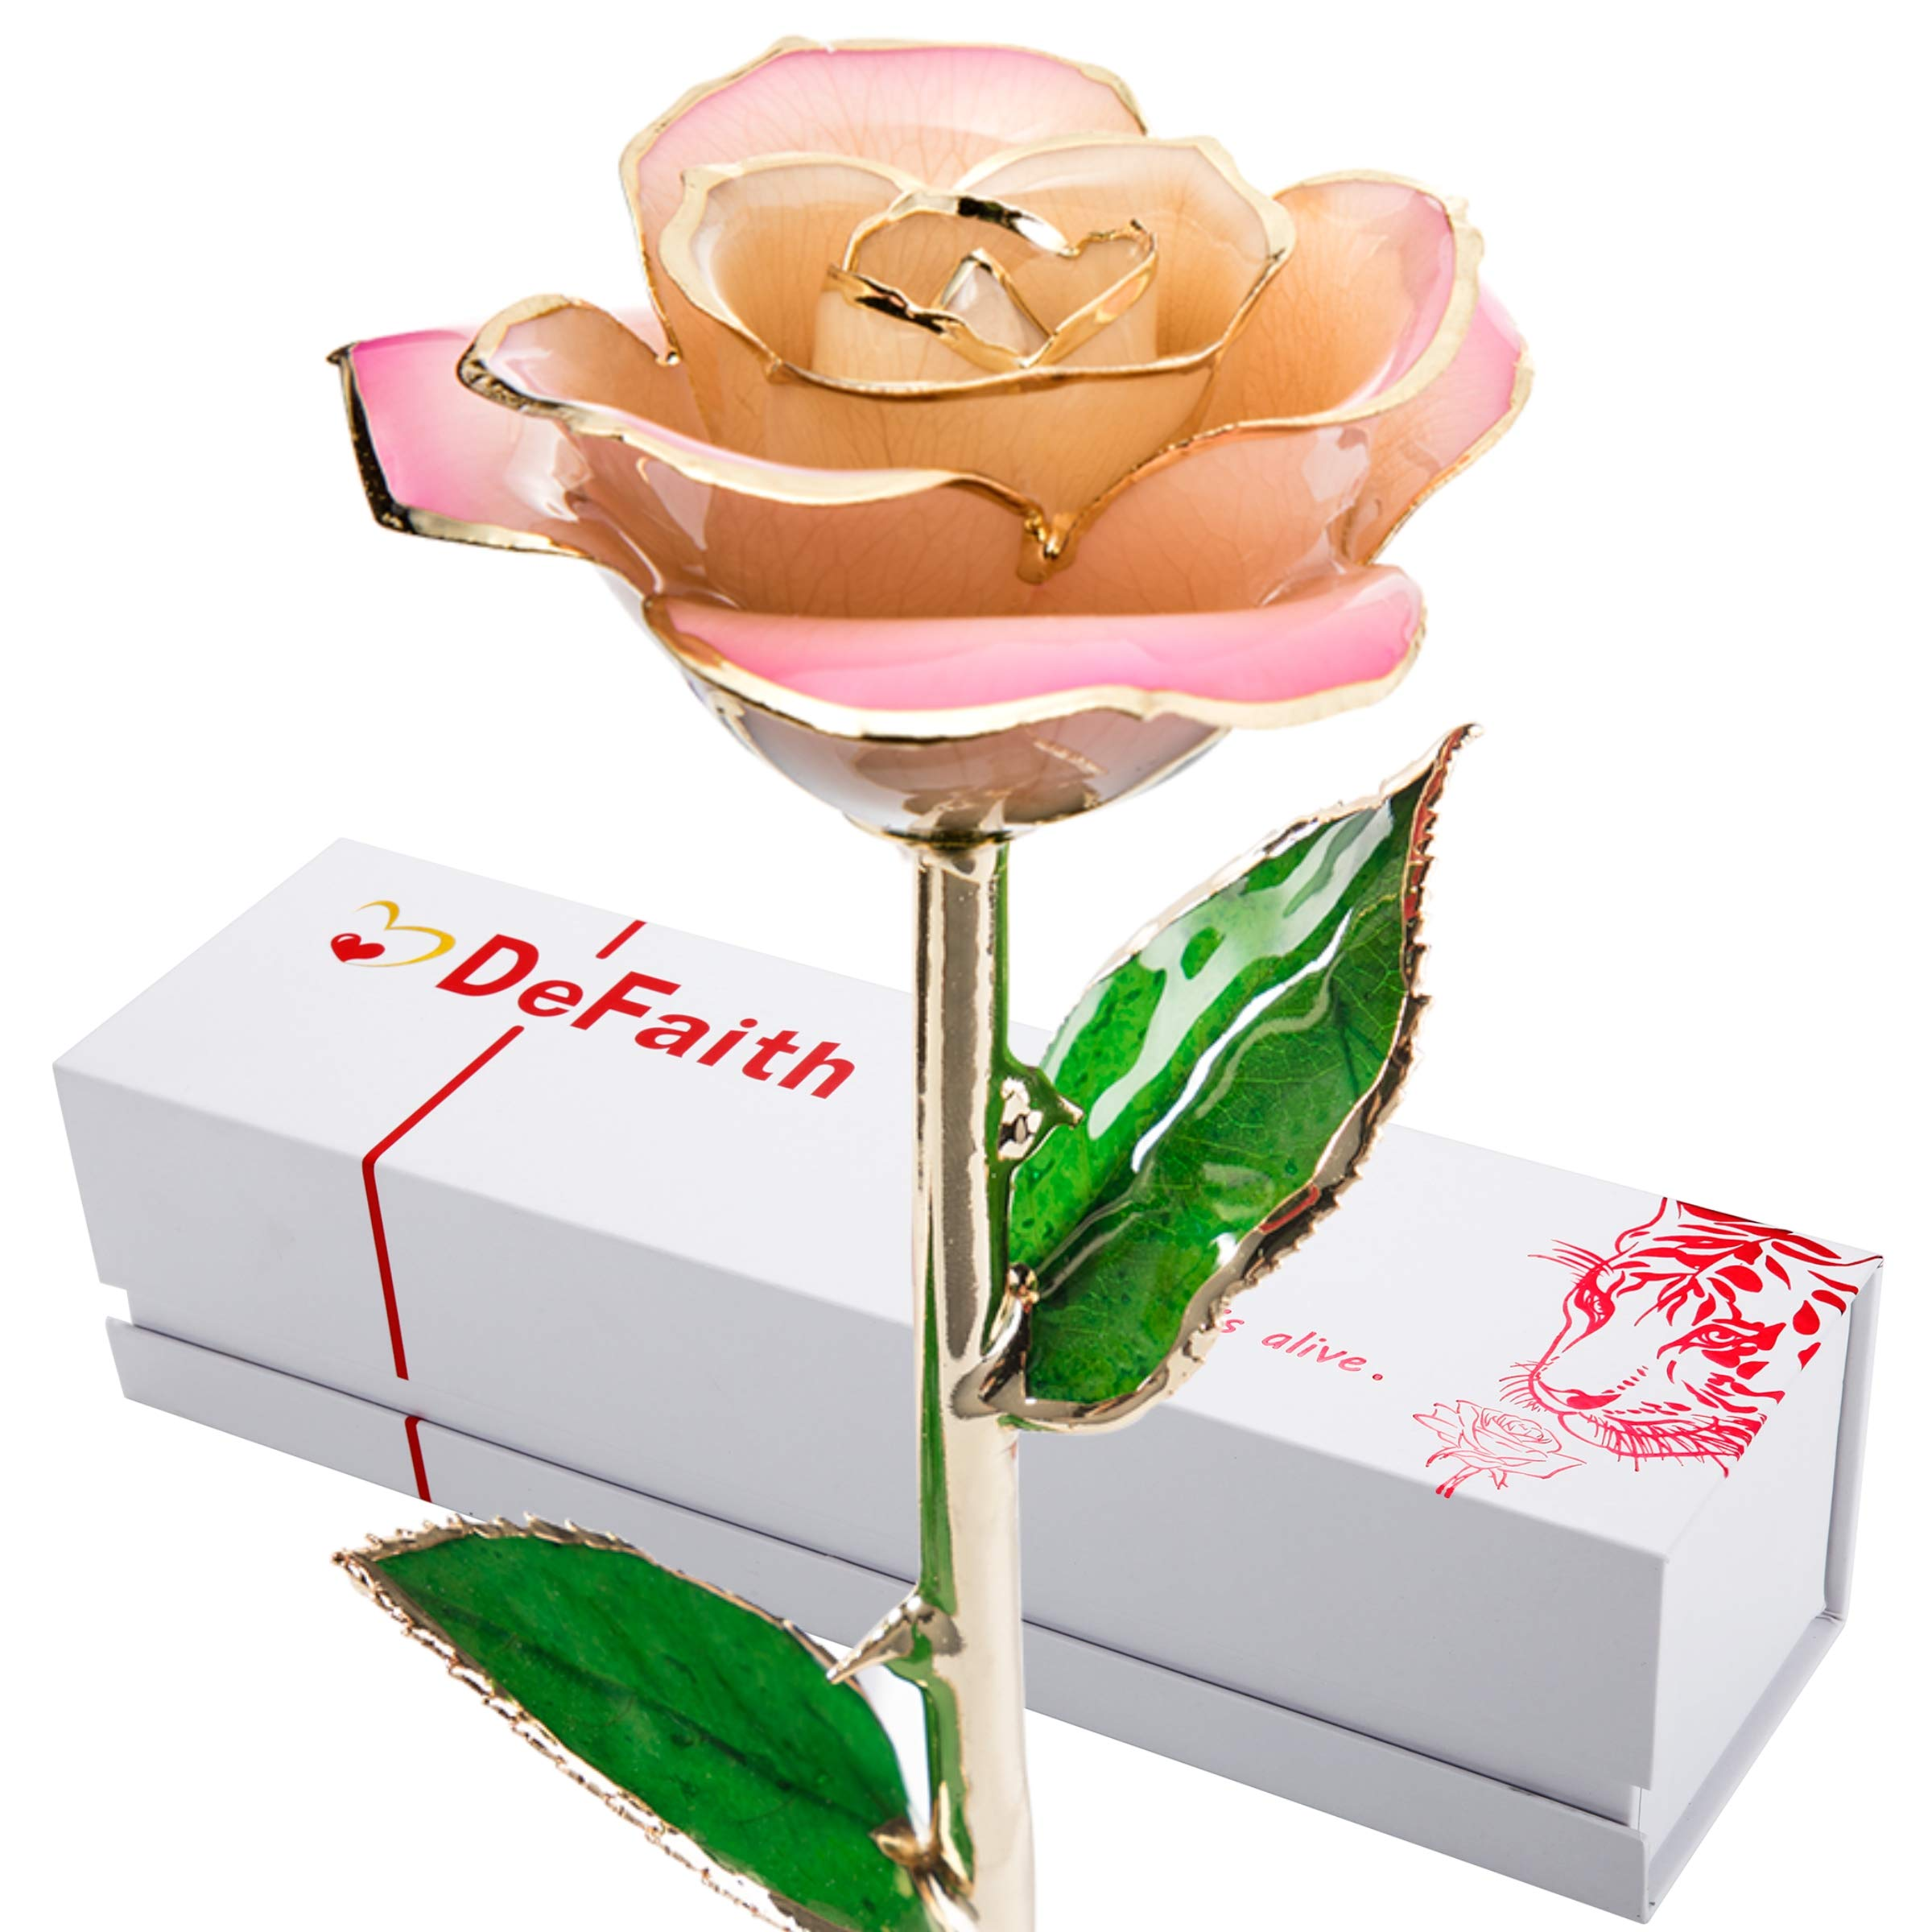 DEFAITH 24K Gold Dipped Real Rose Gifts, Best Wedding Anniversary Valentines Day Love Gift for Her Wife Girlfriend Spouse, Pink White with Stand by DEFAITH